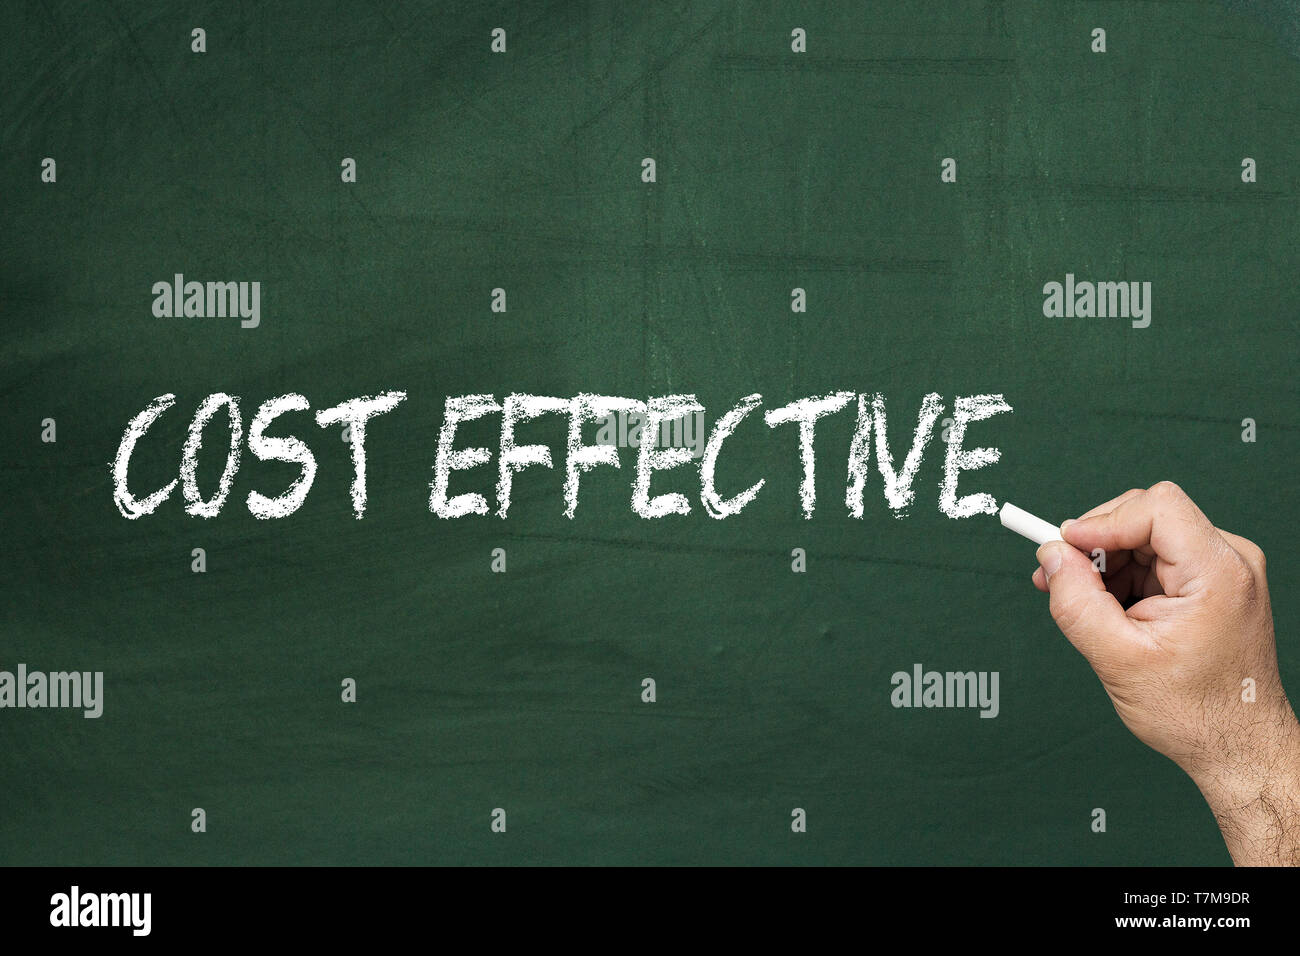 Male's hand writing on blackboard - Cost effective - Stock Image